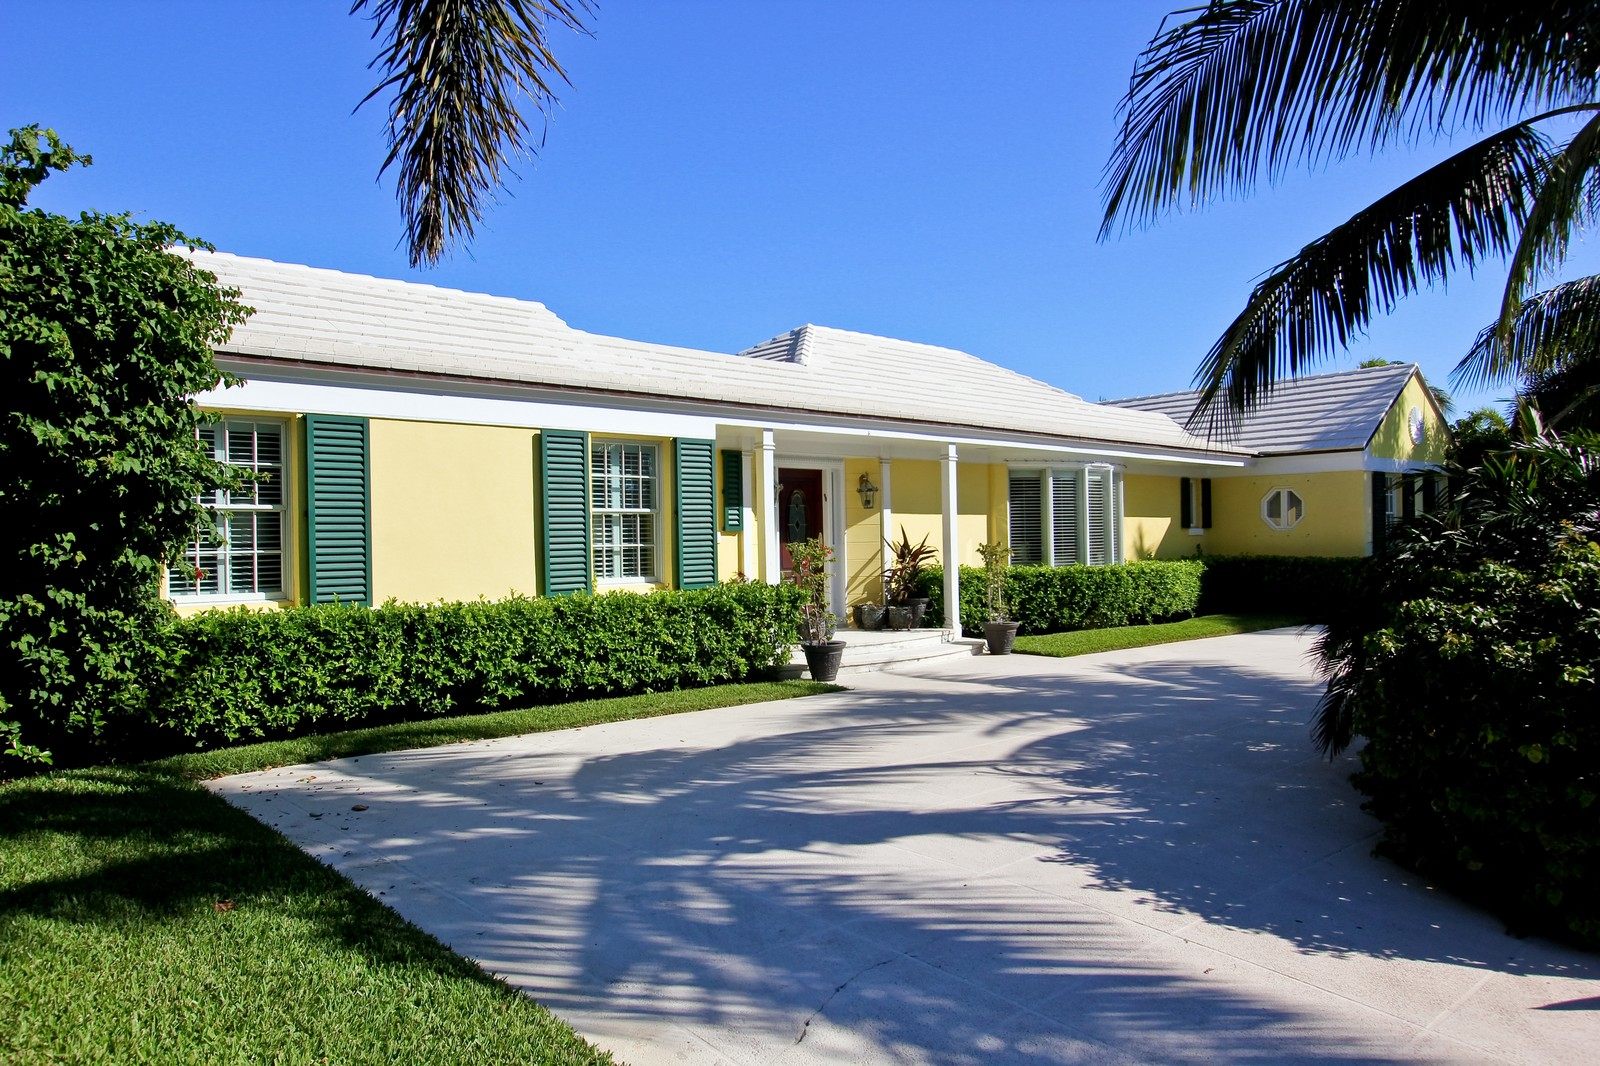 Real Estate Photography - 301 Garden Rd, Palm Beach, FL, 33480 - Front View